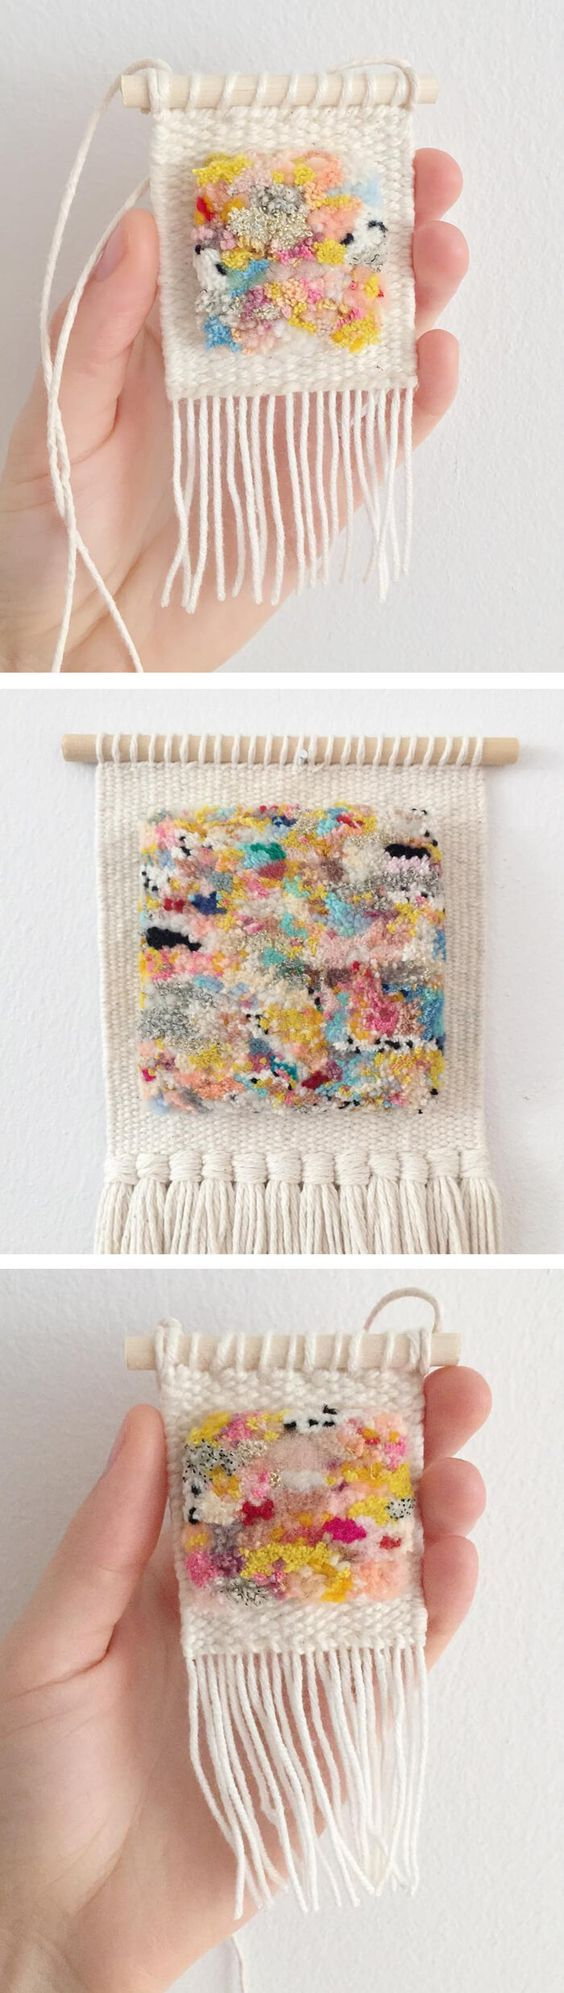 Weaving by Allyson Rousseau // wall hangings // yarn art